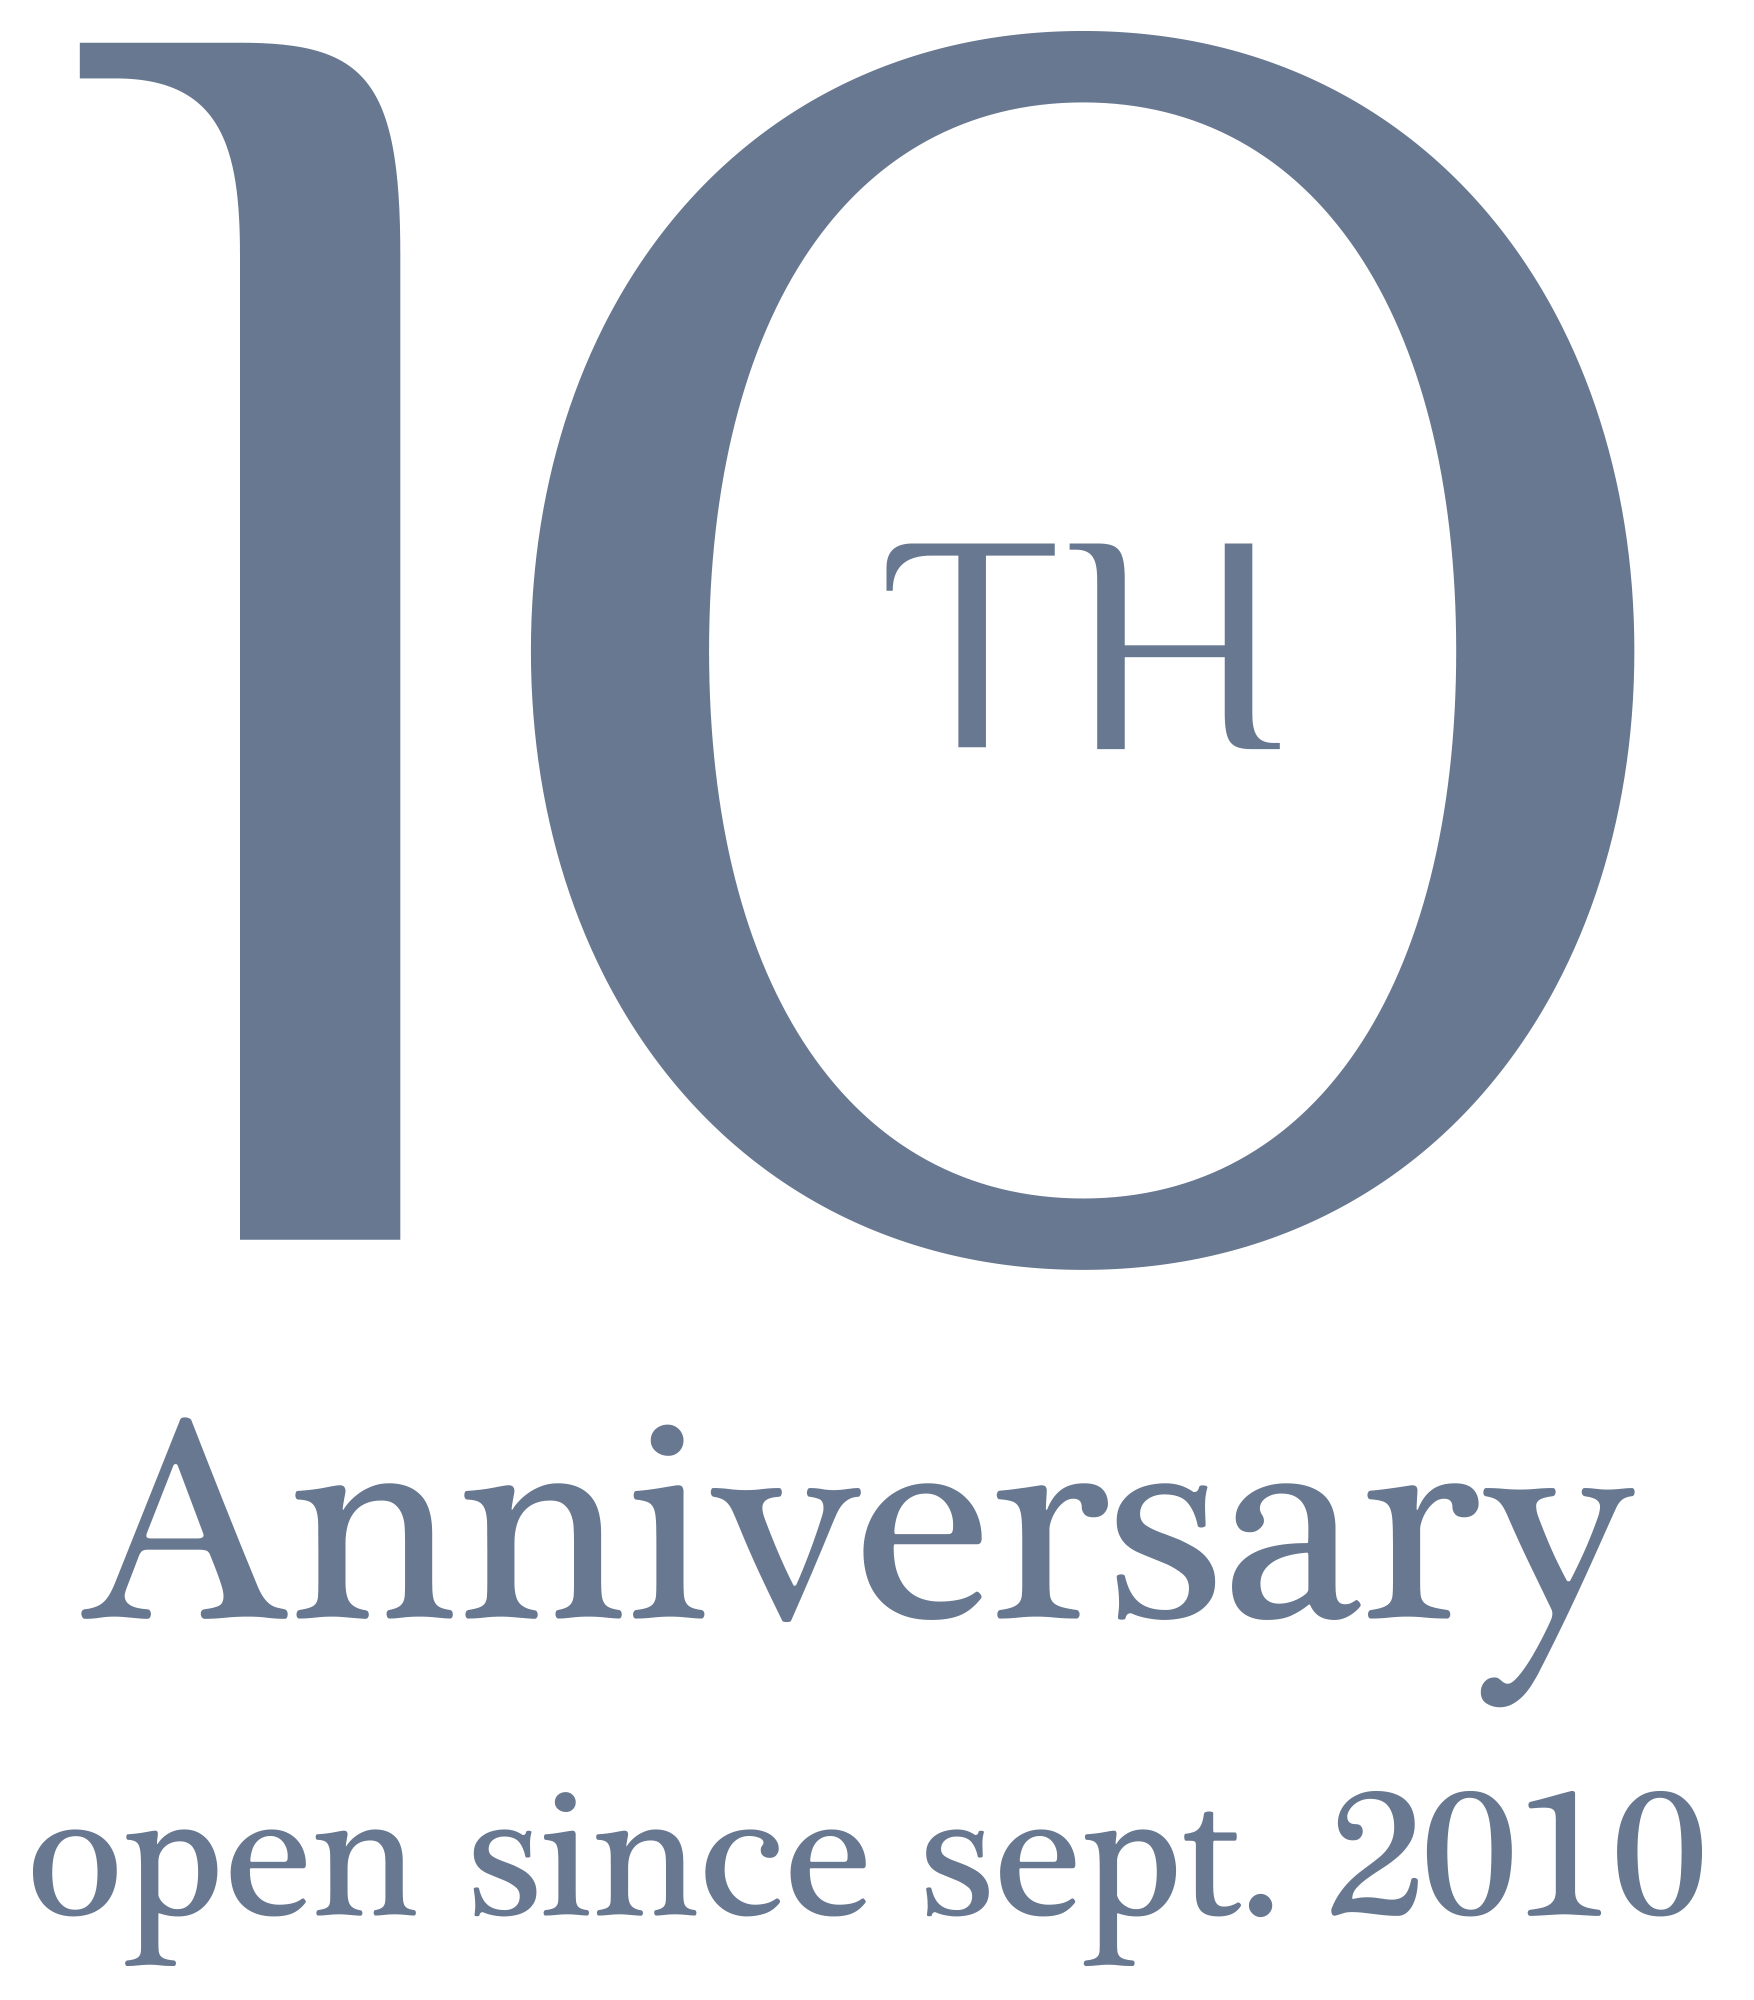 The Oitavos Luxury Hotel in Cascais 10th anniversary